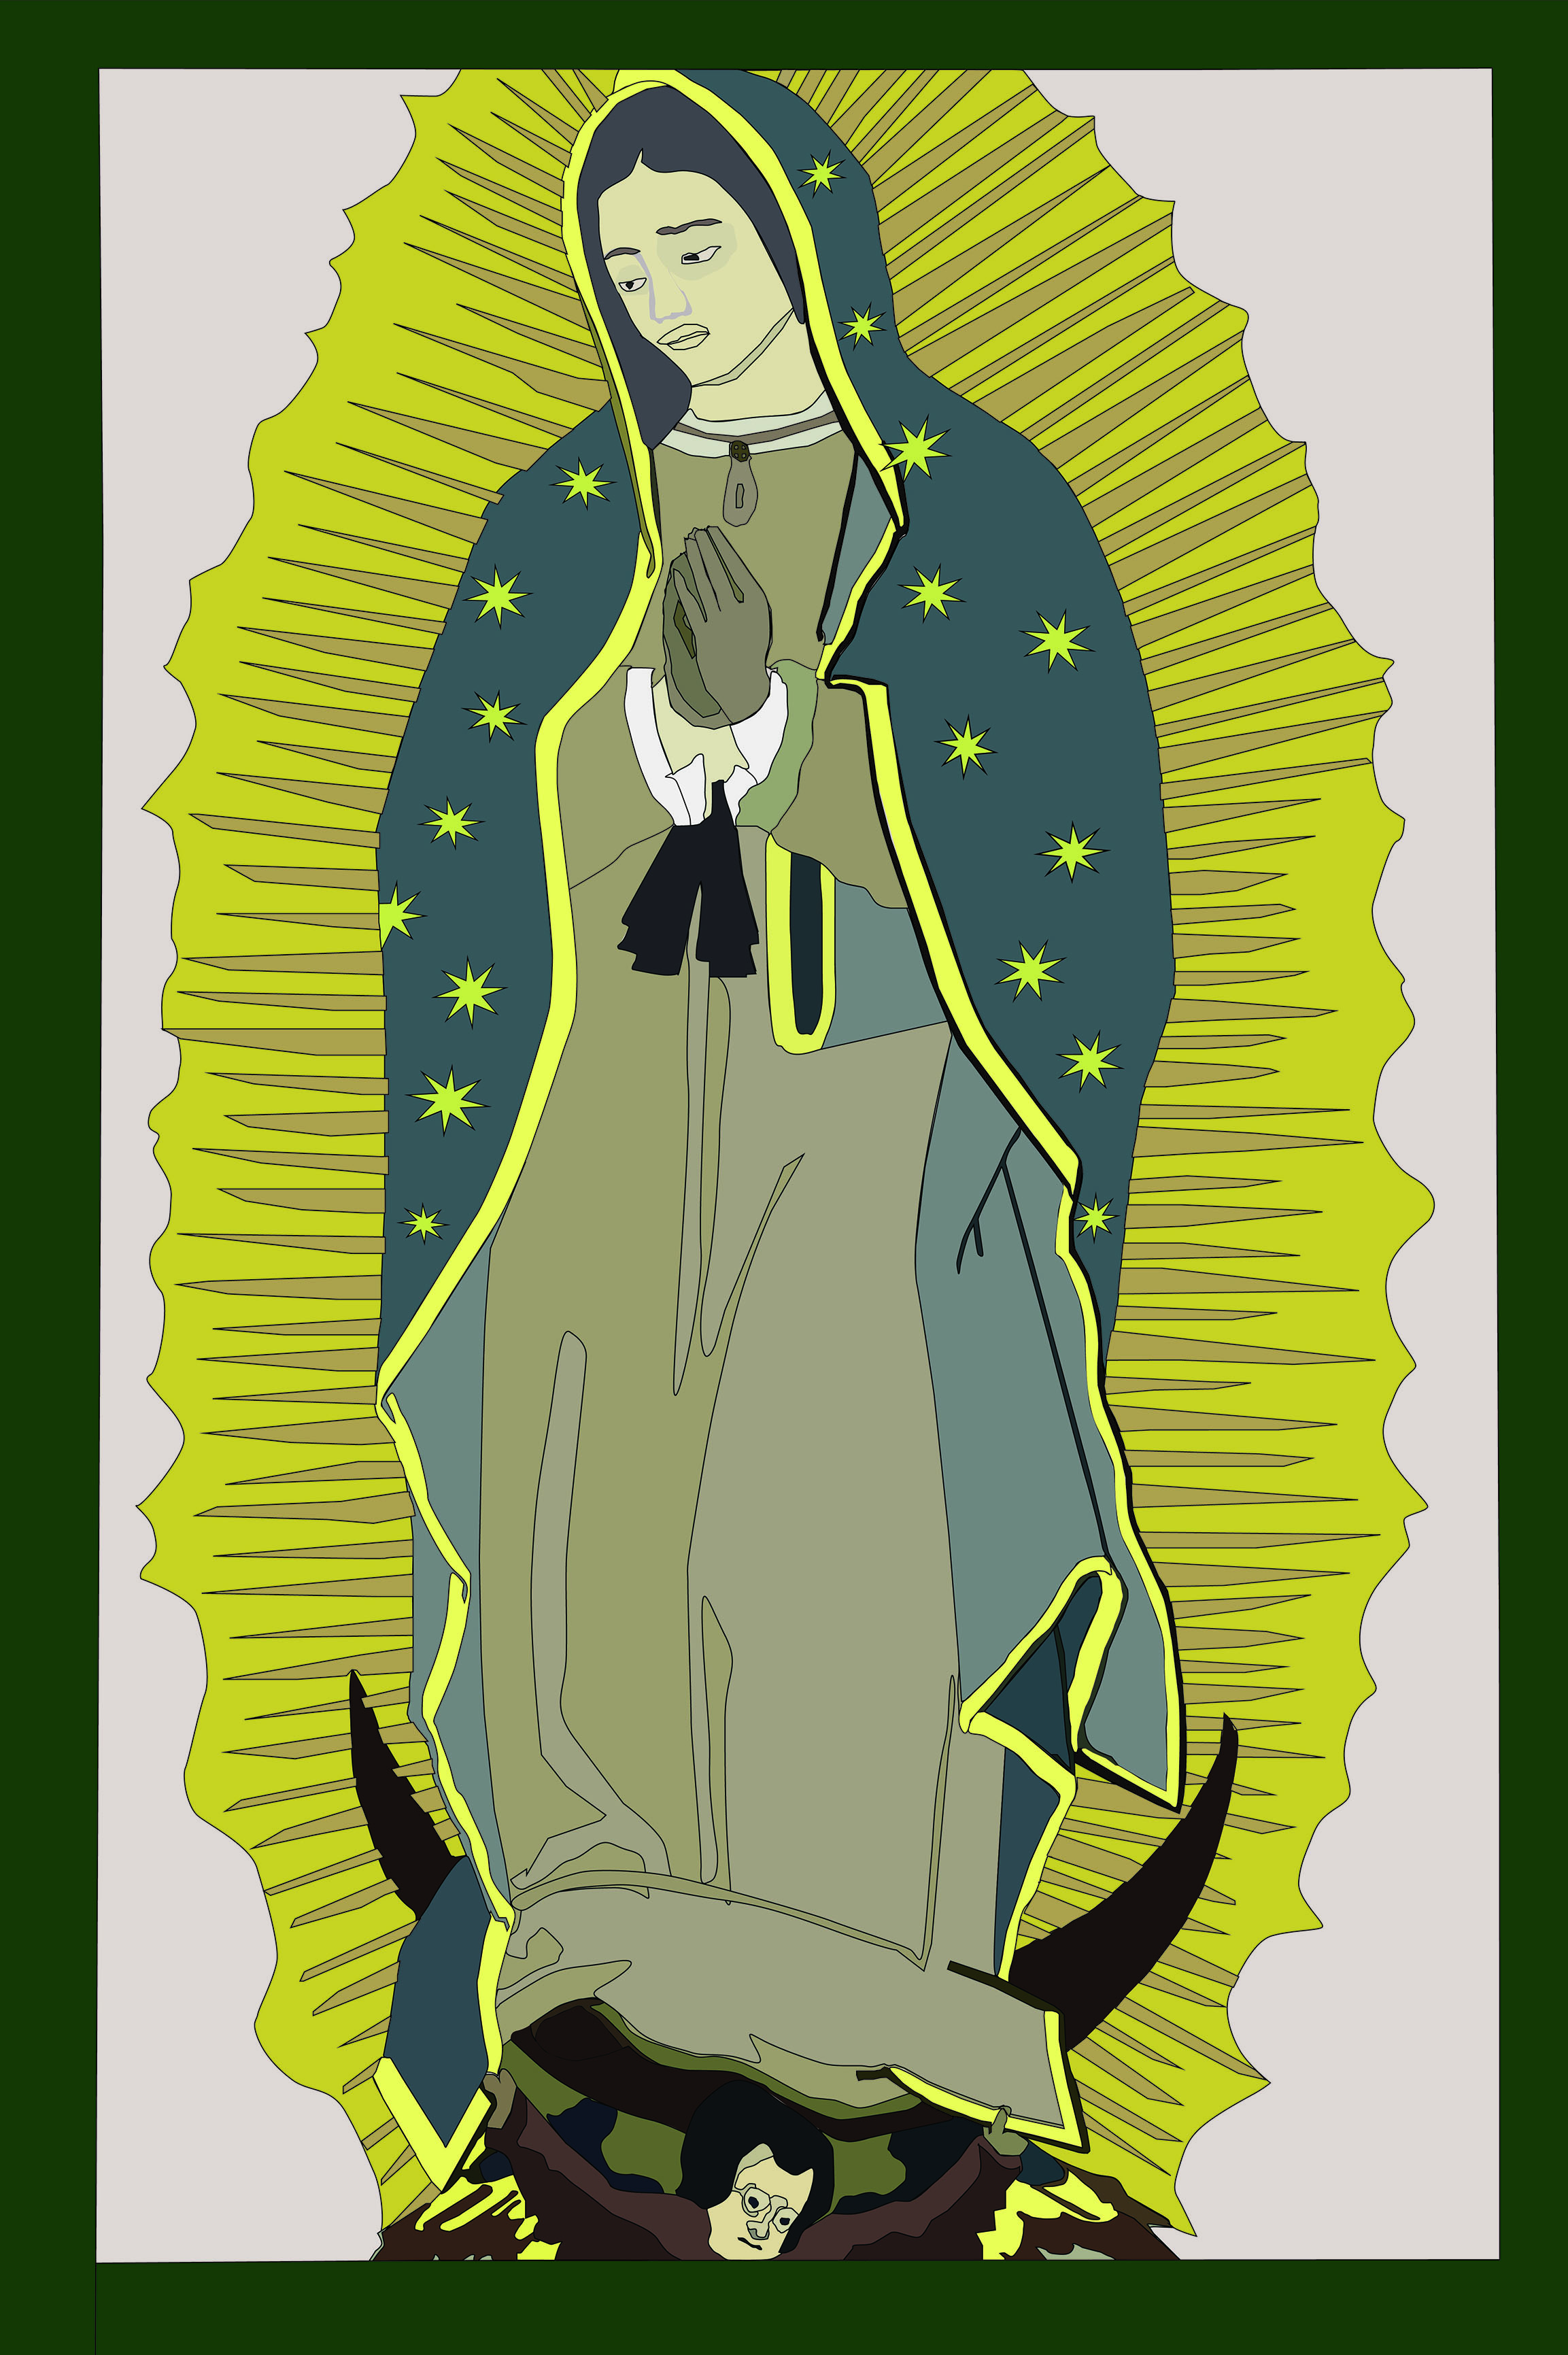 Our Lady of Guadalupe Illustration - Bryan Hewing (2018)